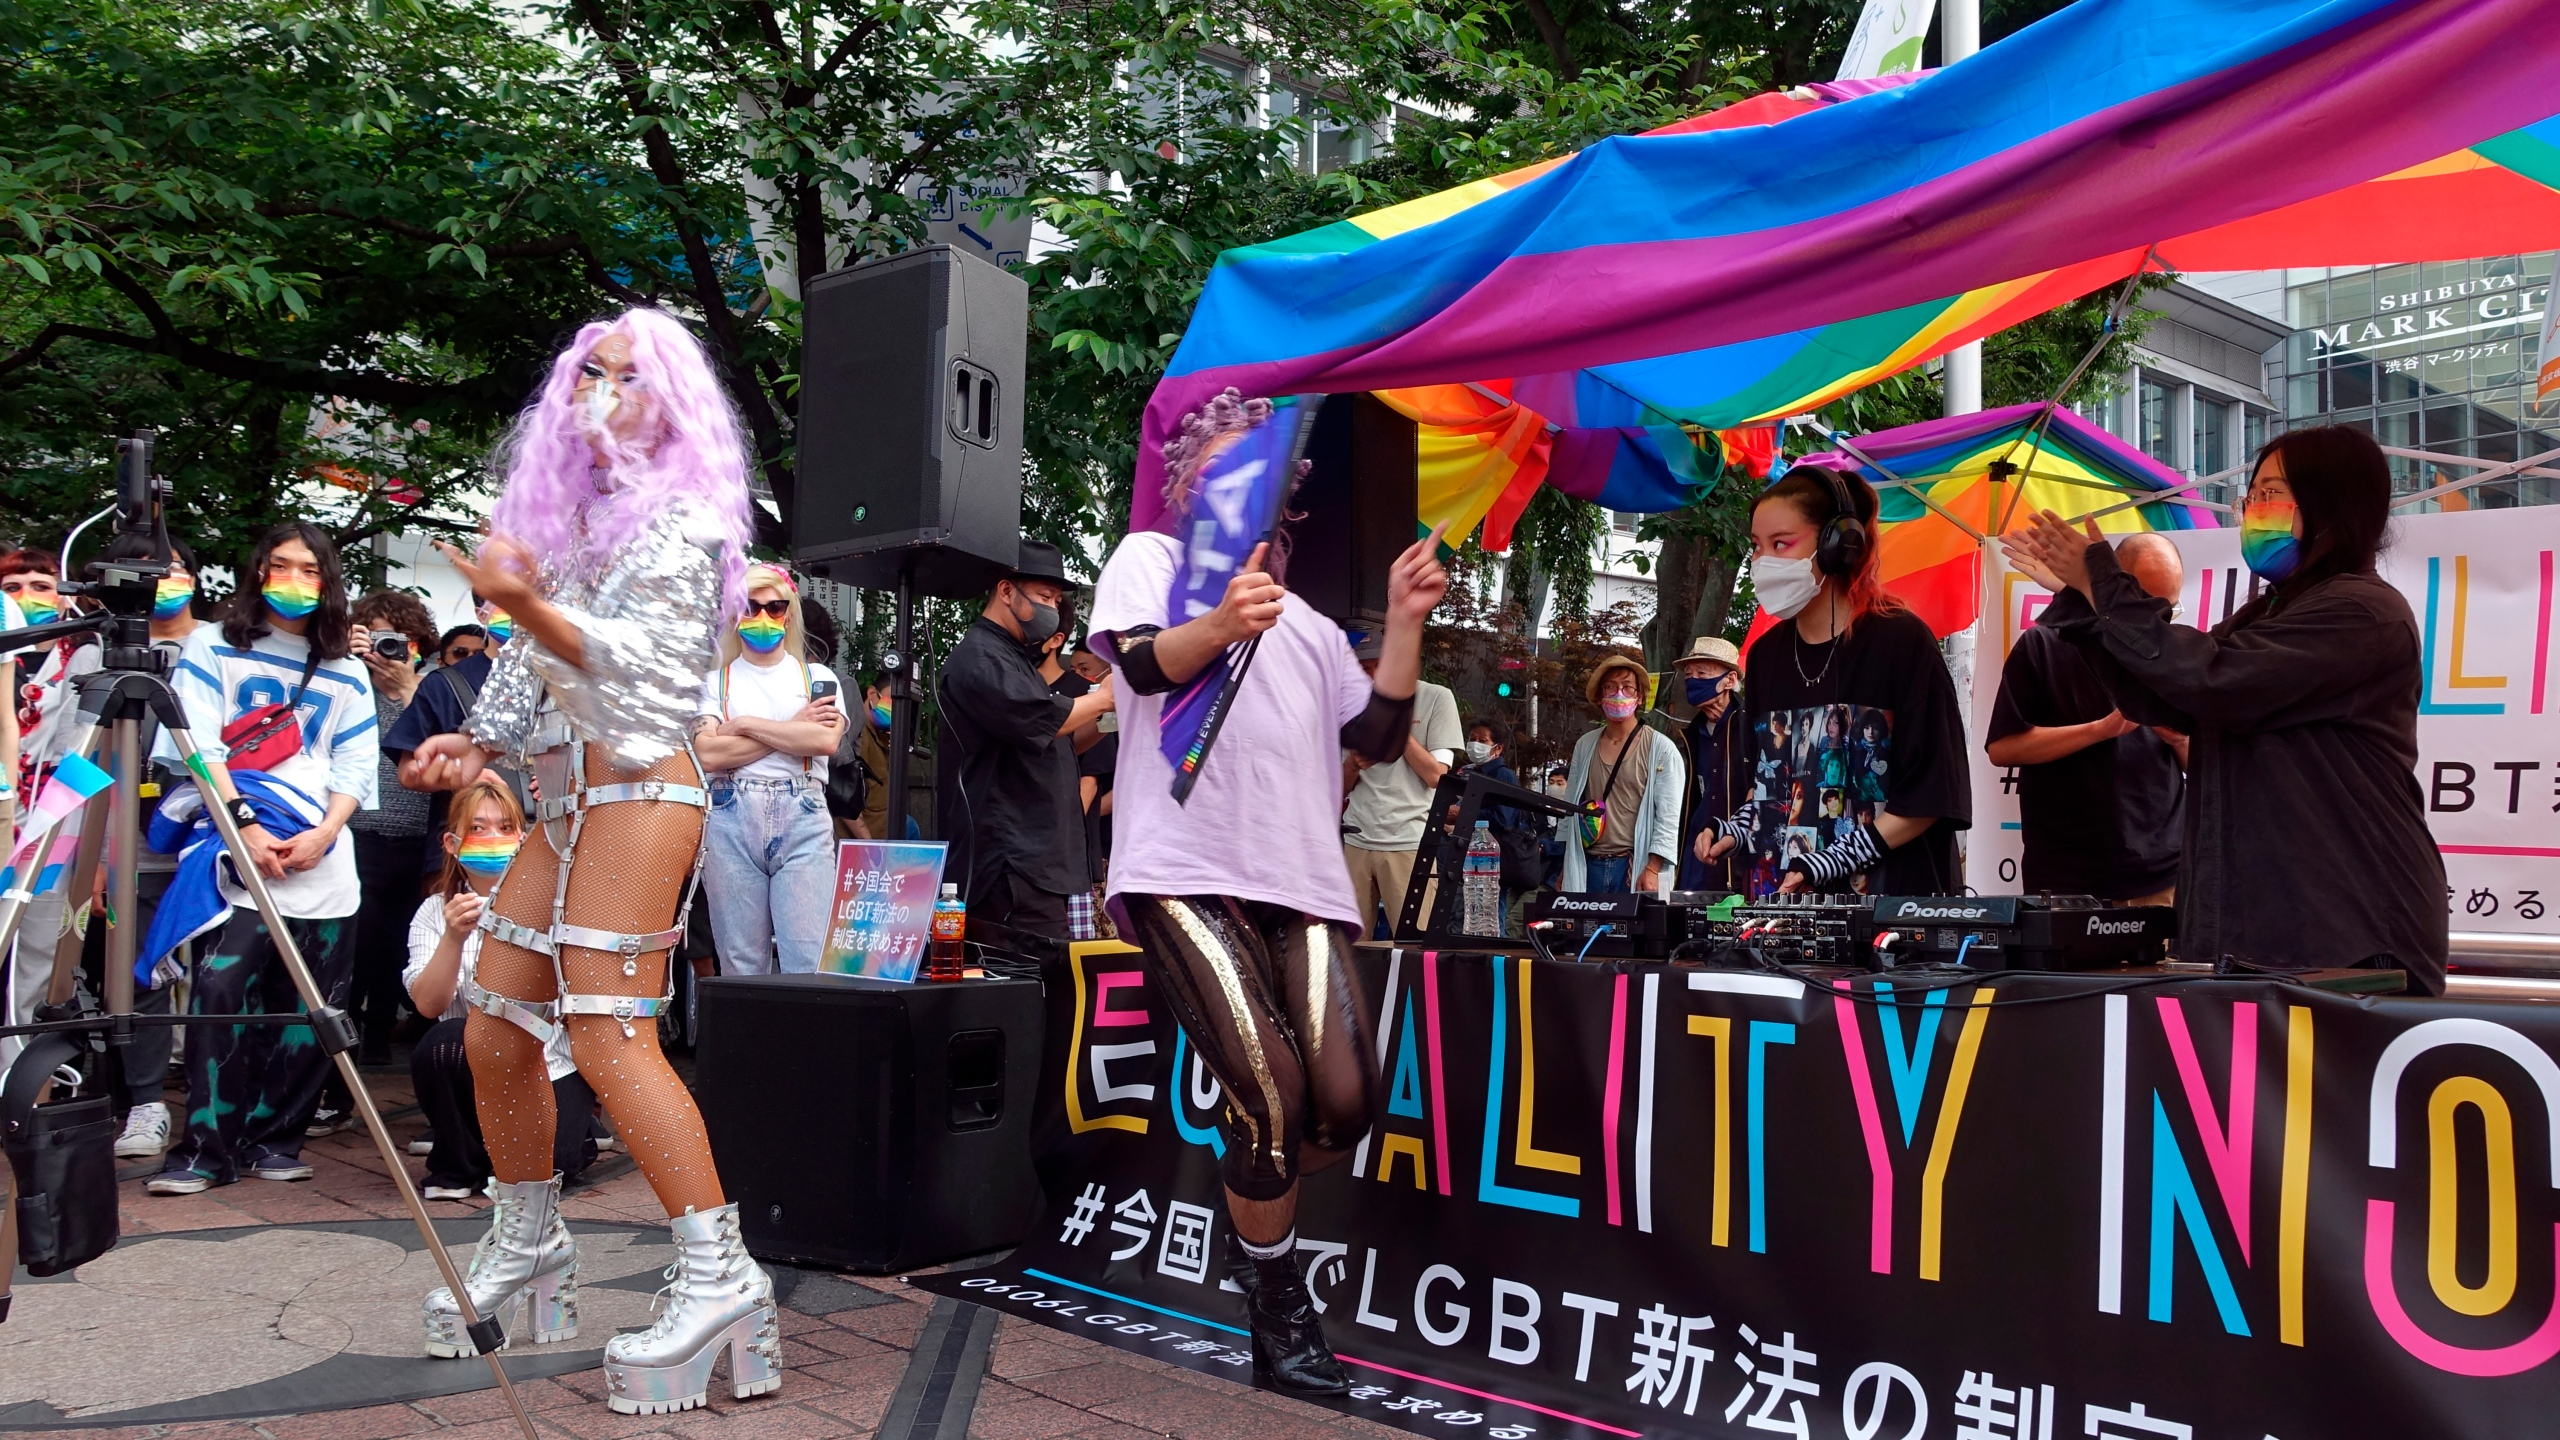 Dozens of LGBTQ activists and supporters of equal rights laws gather at the Shibuya district Sunday June 6, 2021, in Tokyo. (AP Photo/Mari Yamaguchi)